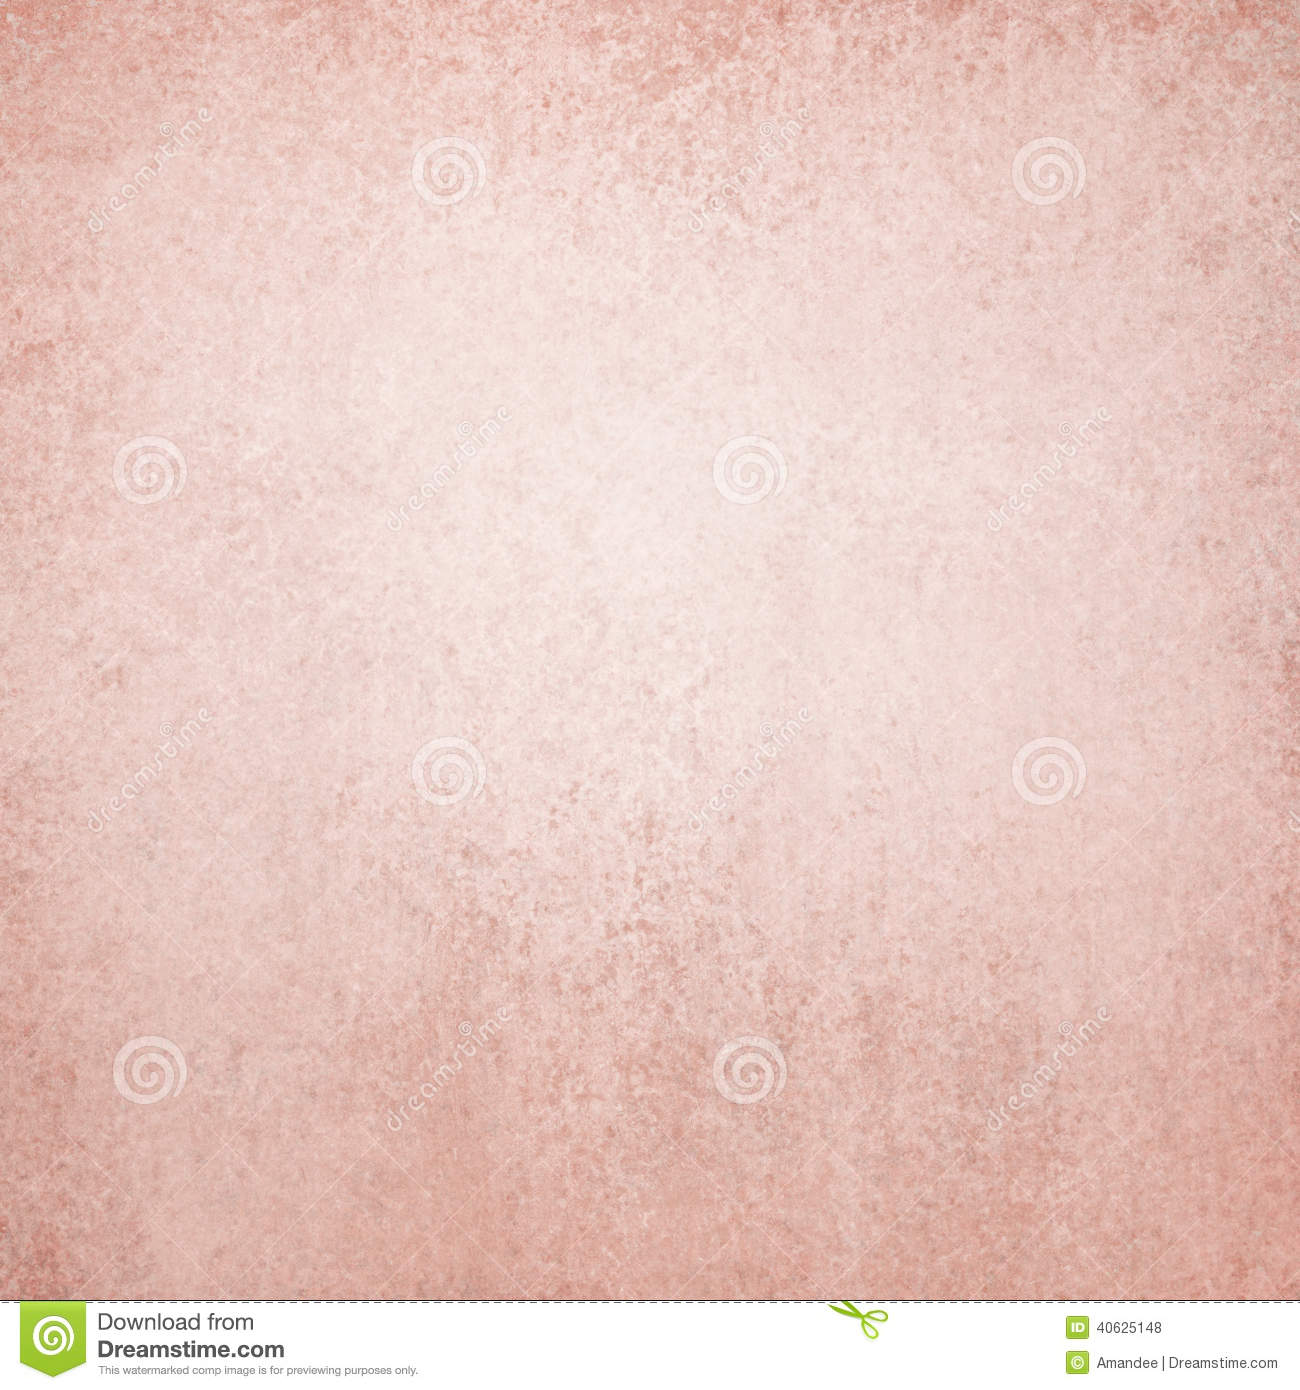 Pink background with faint vintage texture